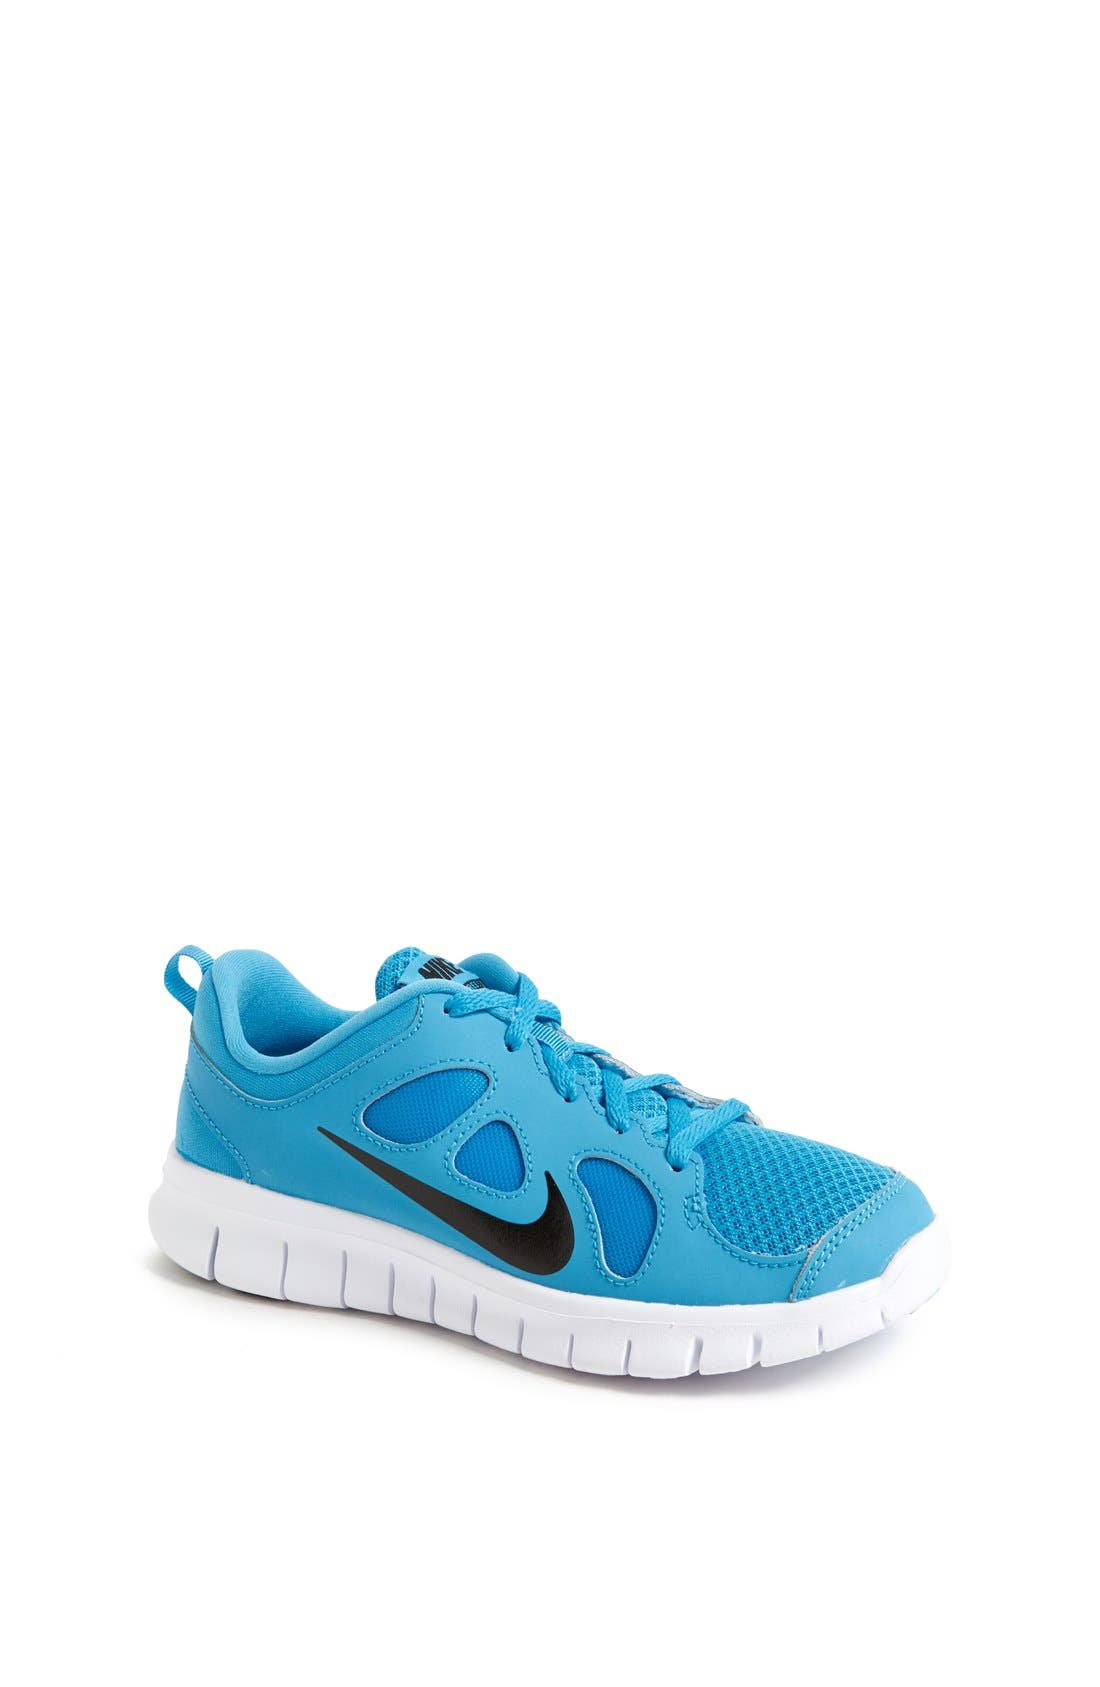 Main Image - Nike 'Free Run 5.0' Running Shoe (Toddler & Little Kid)